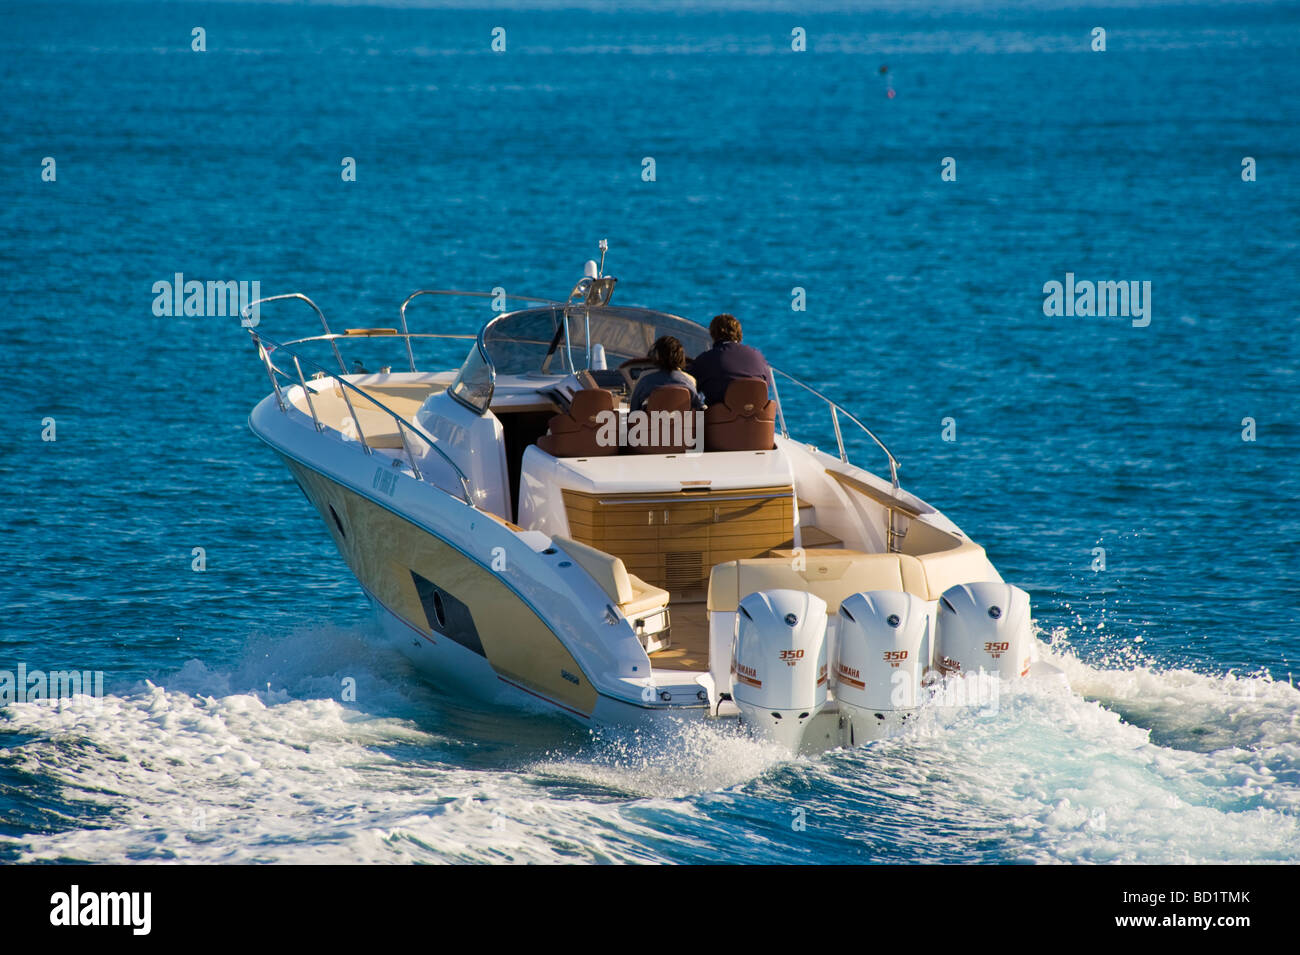 Three Yamaha outboard engines on Sessa Key Largo 36 powerboat splatter splash water fun speed - Stock Image